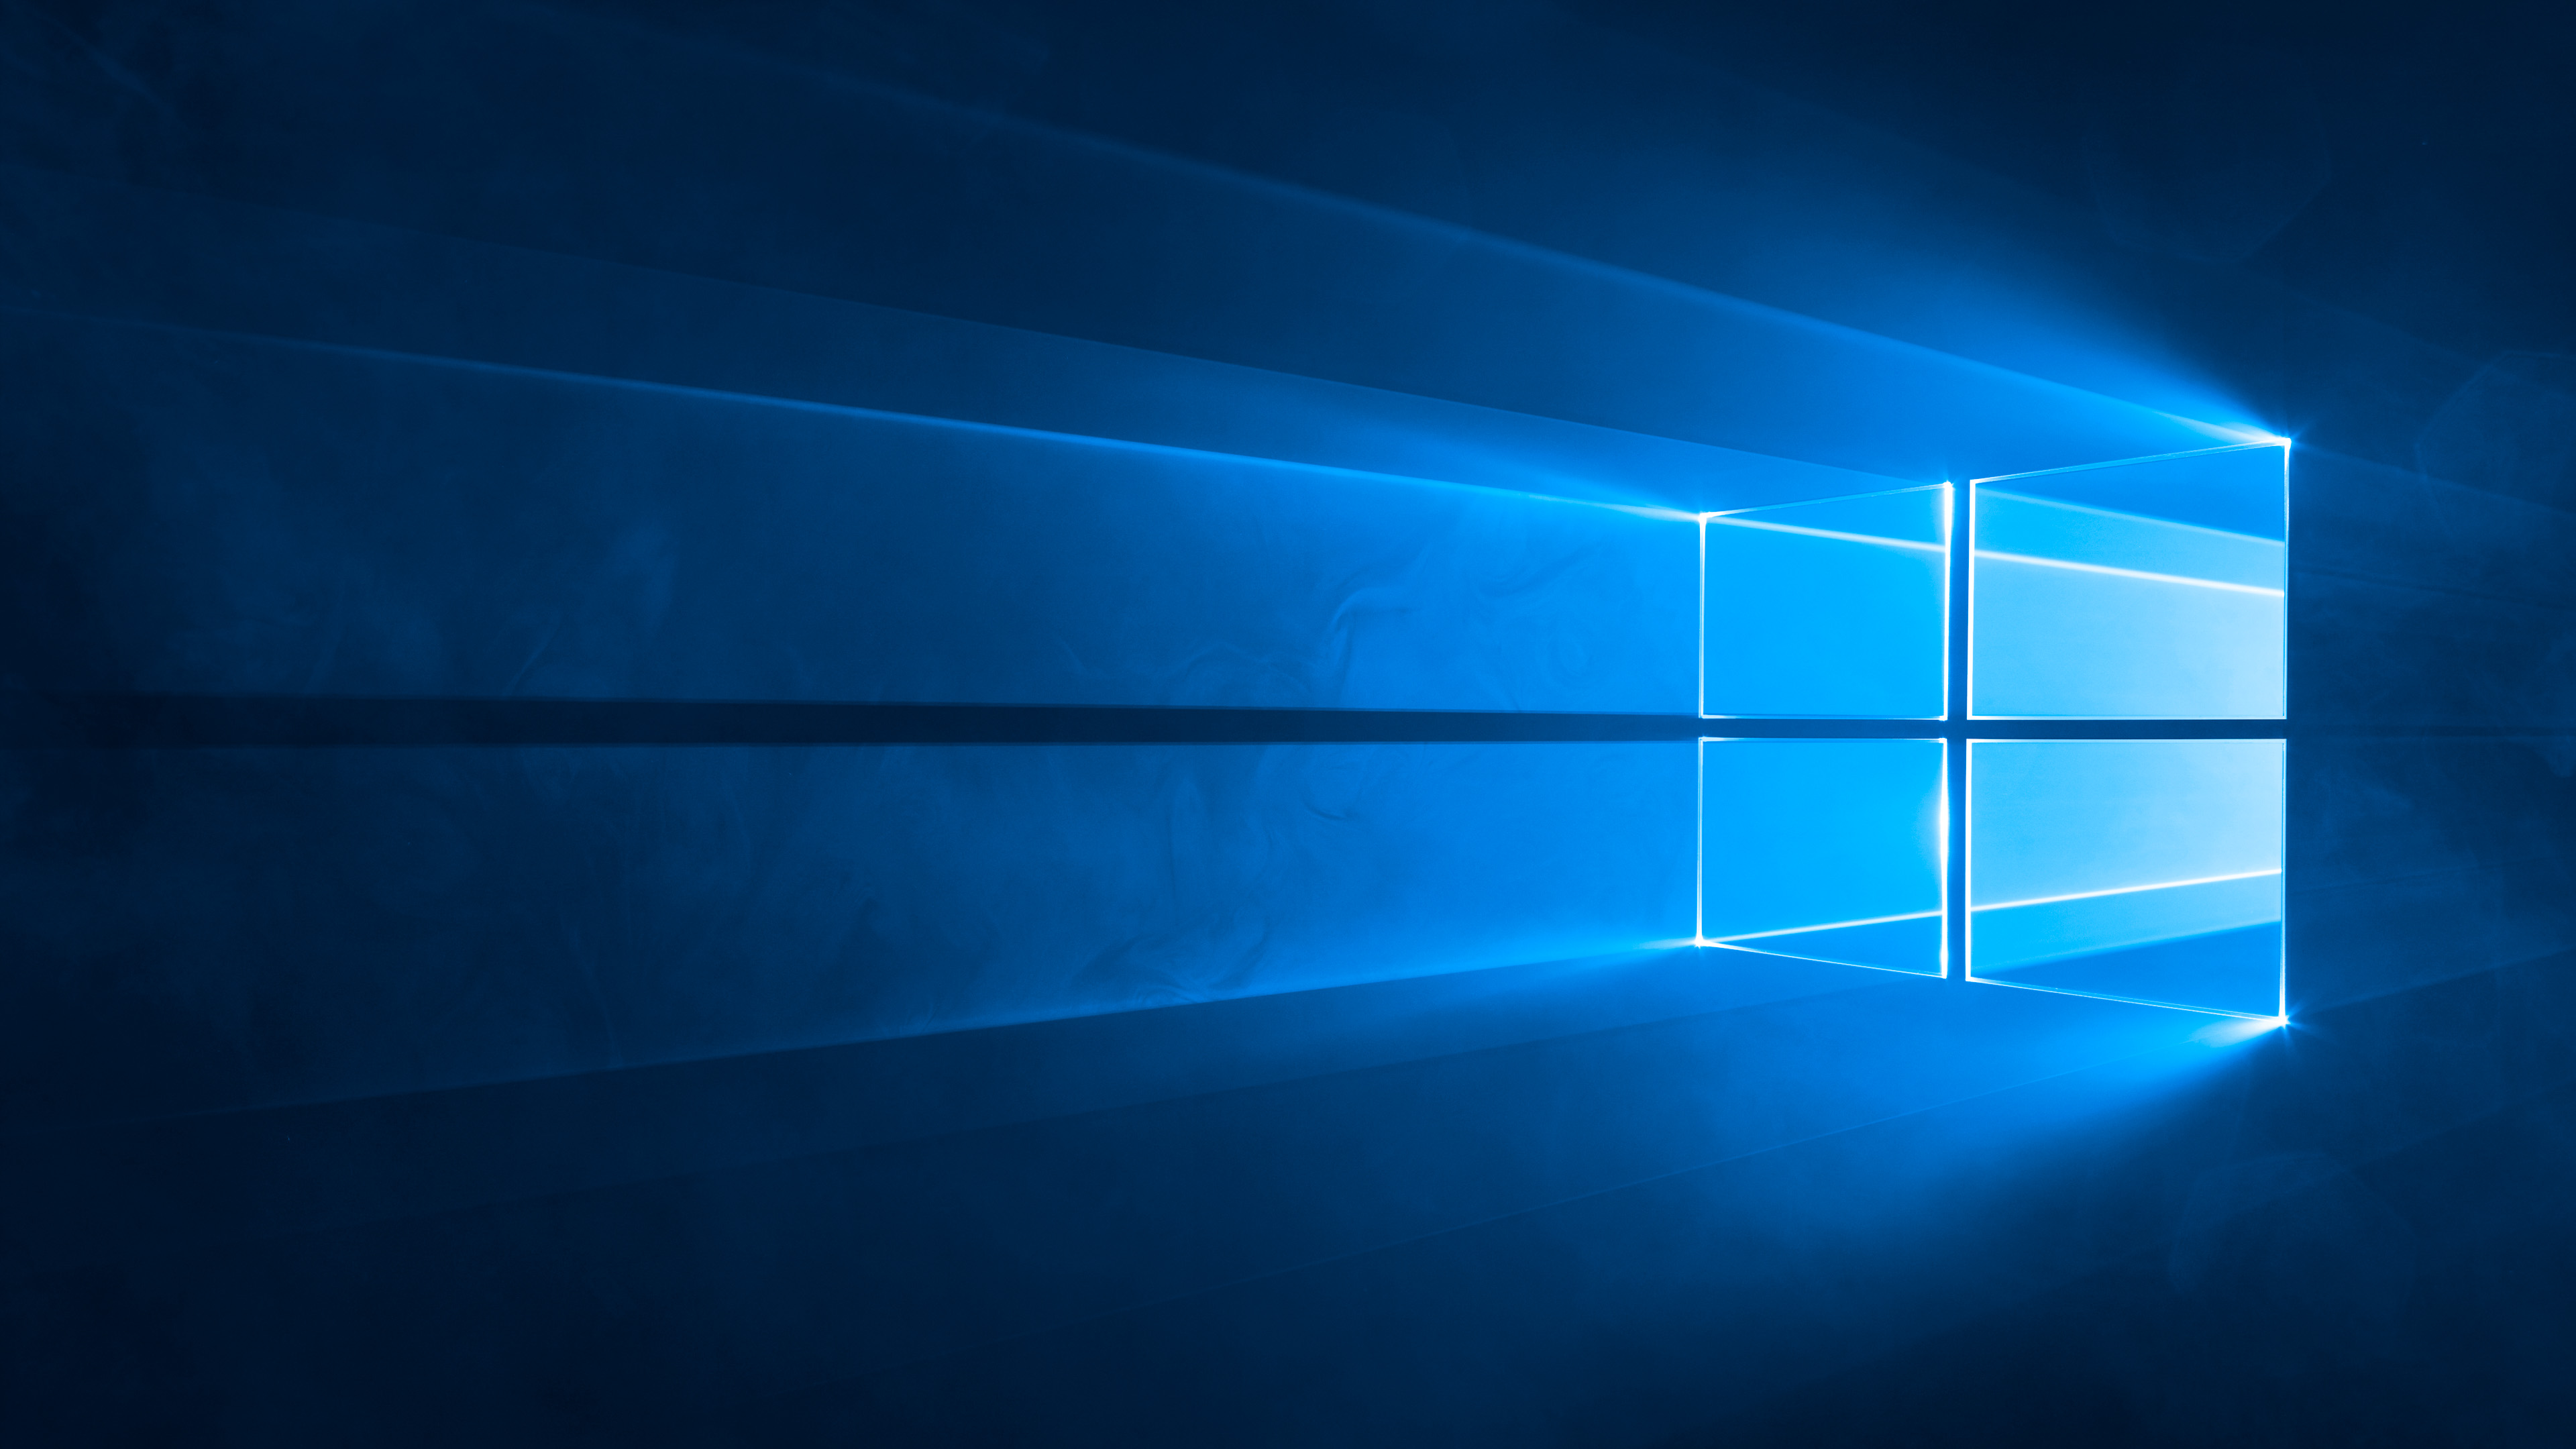 TAGS 4k collection 4k wallpapers download 4K windows 10 wallpapers 3840x2160